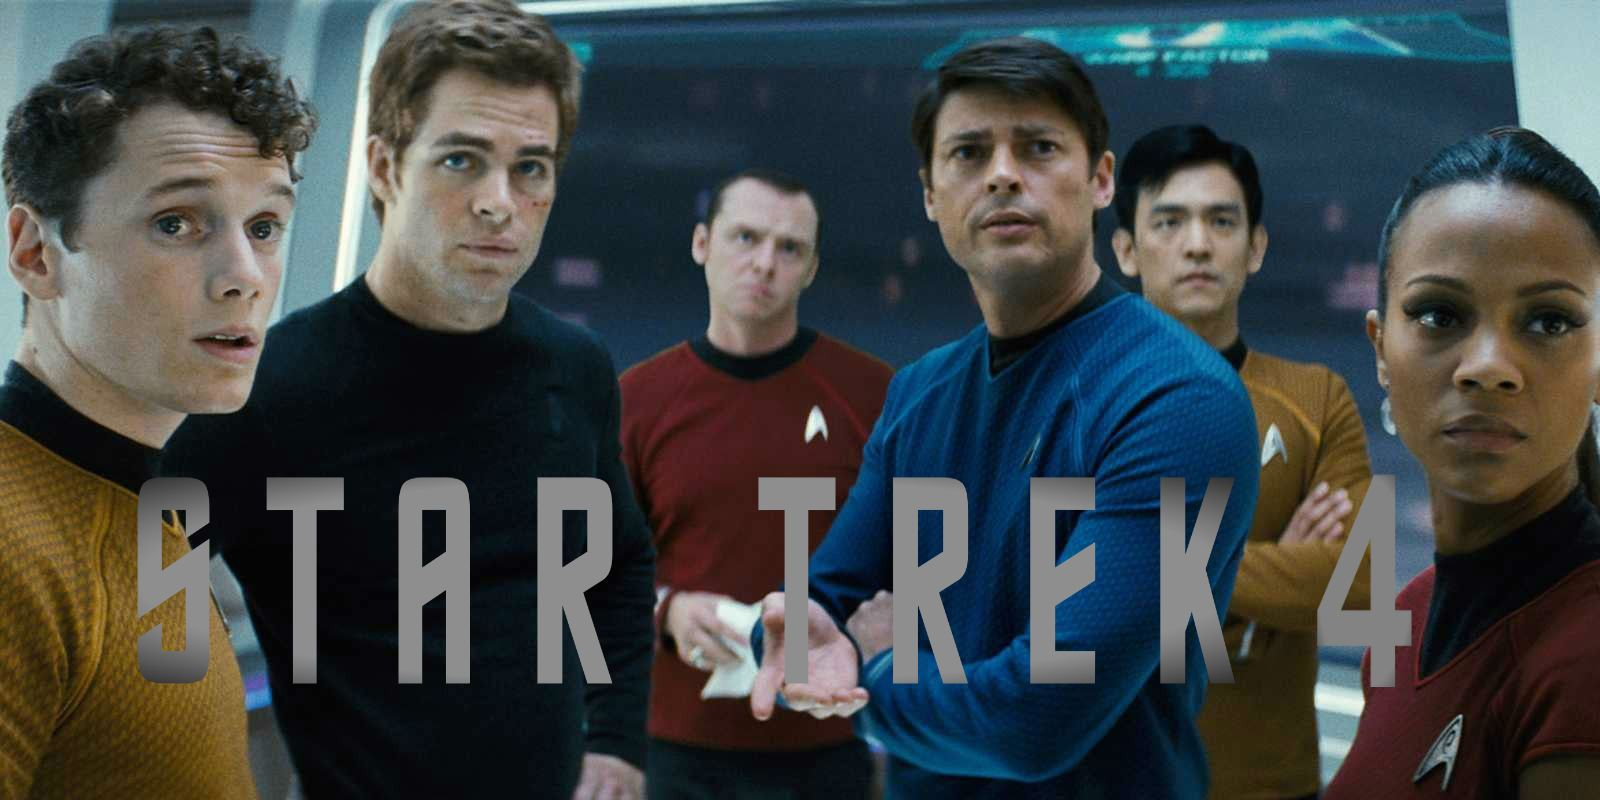 Image result for star trek 4 cast